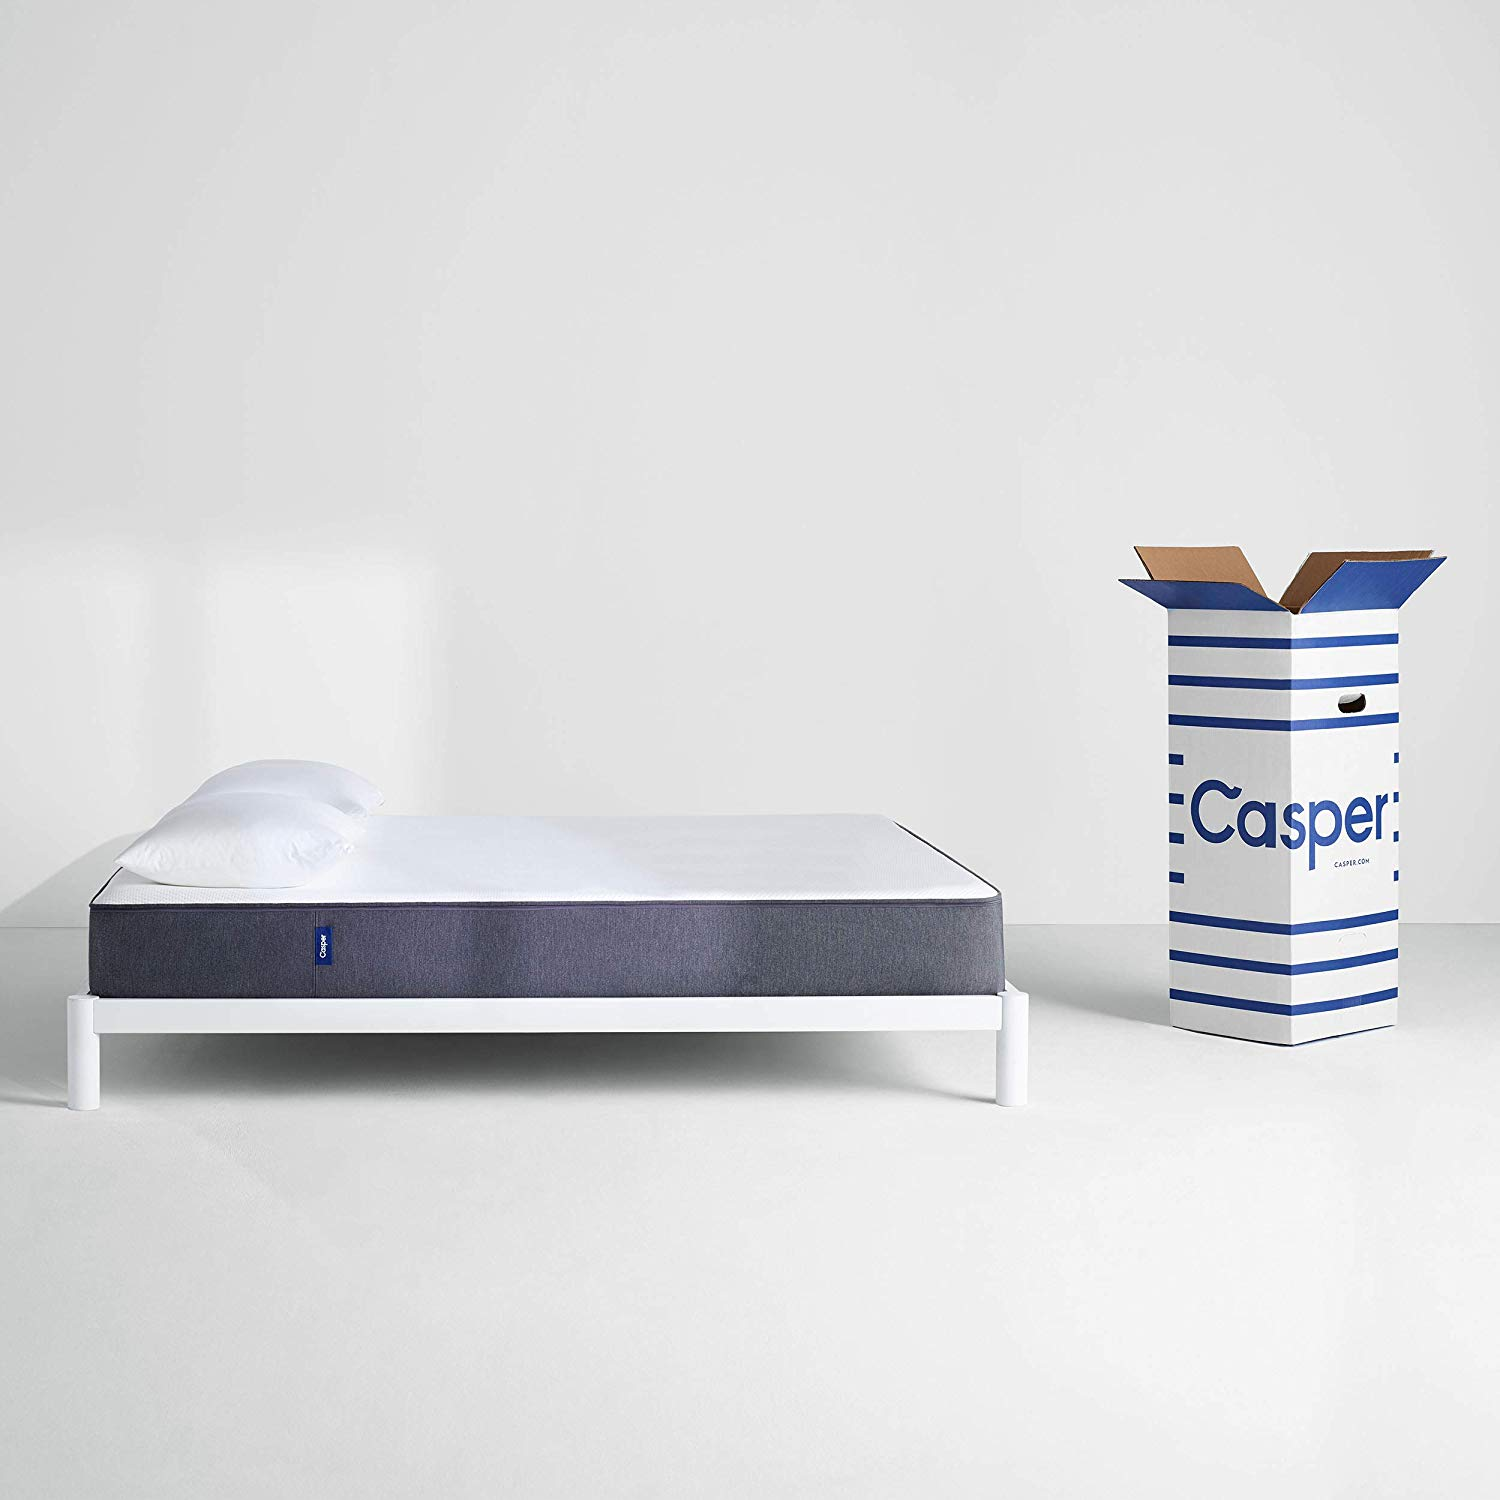 Casper Sleep Best Mattresses Under $1000 Review by www.snoremagazine.com